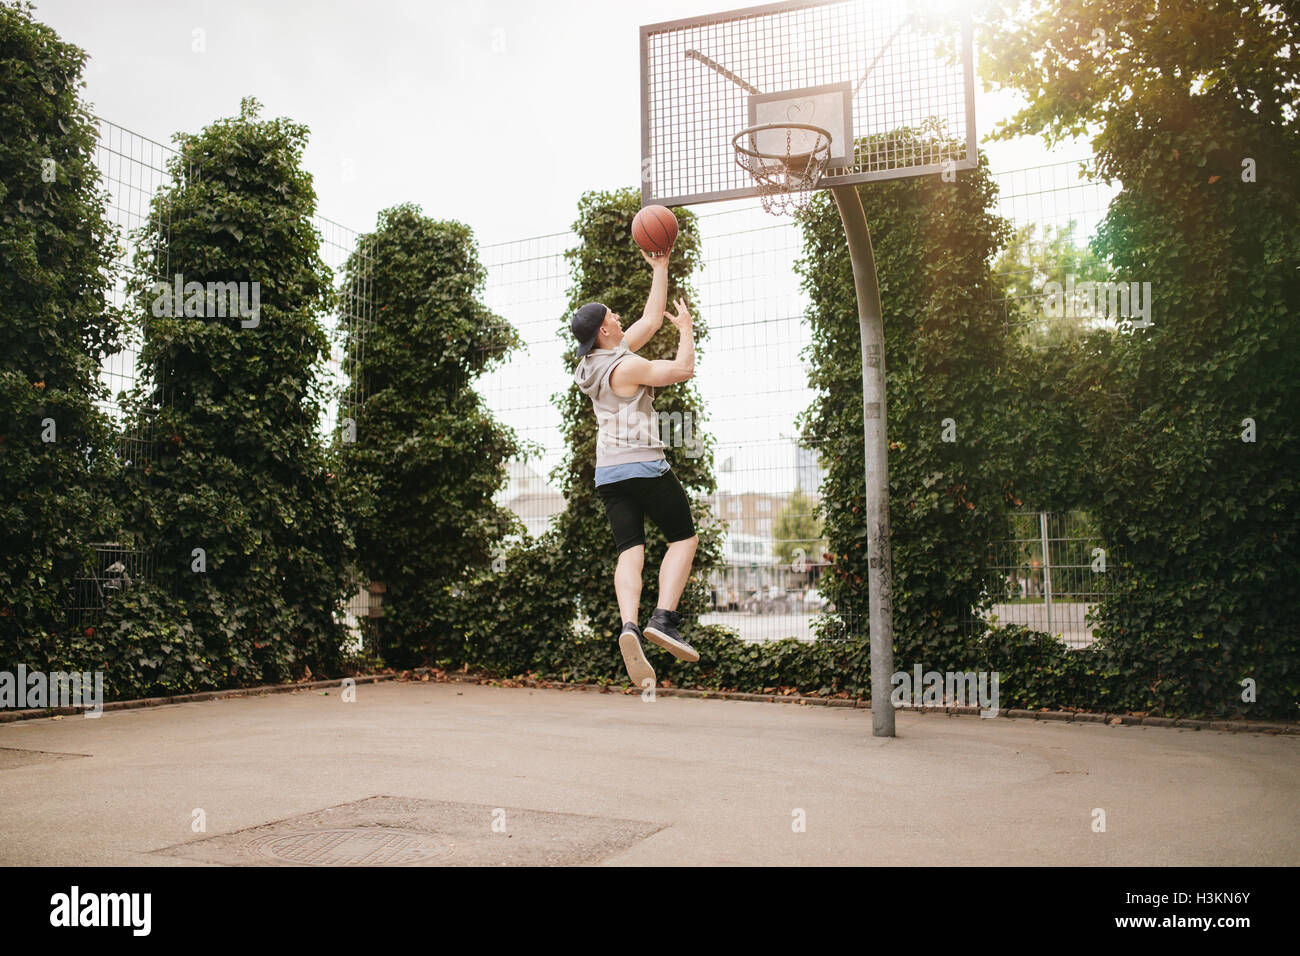 Young man jumping and dunking basketball into hoop. Teenage guy playing streetball. - Stock Image